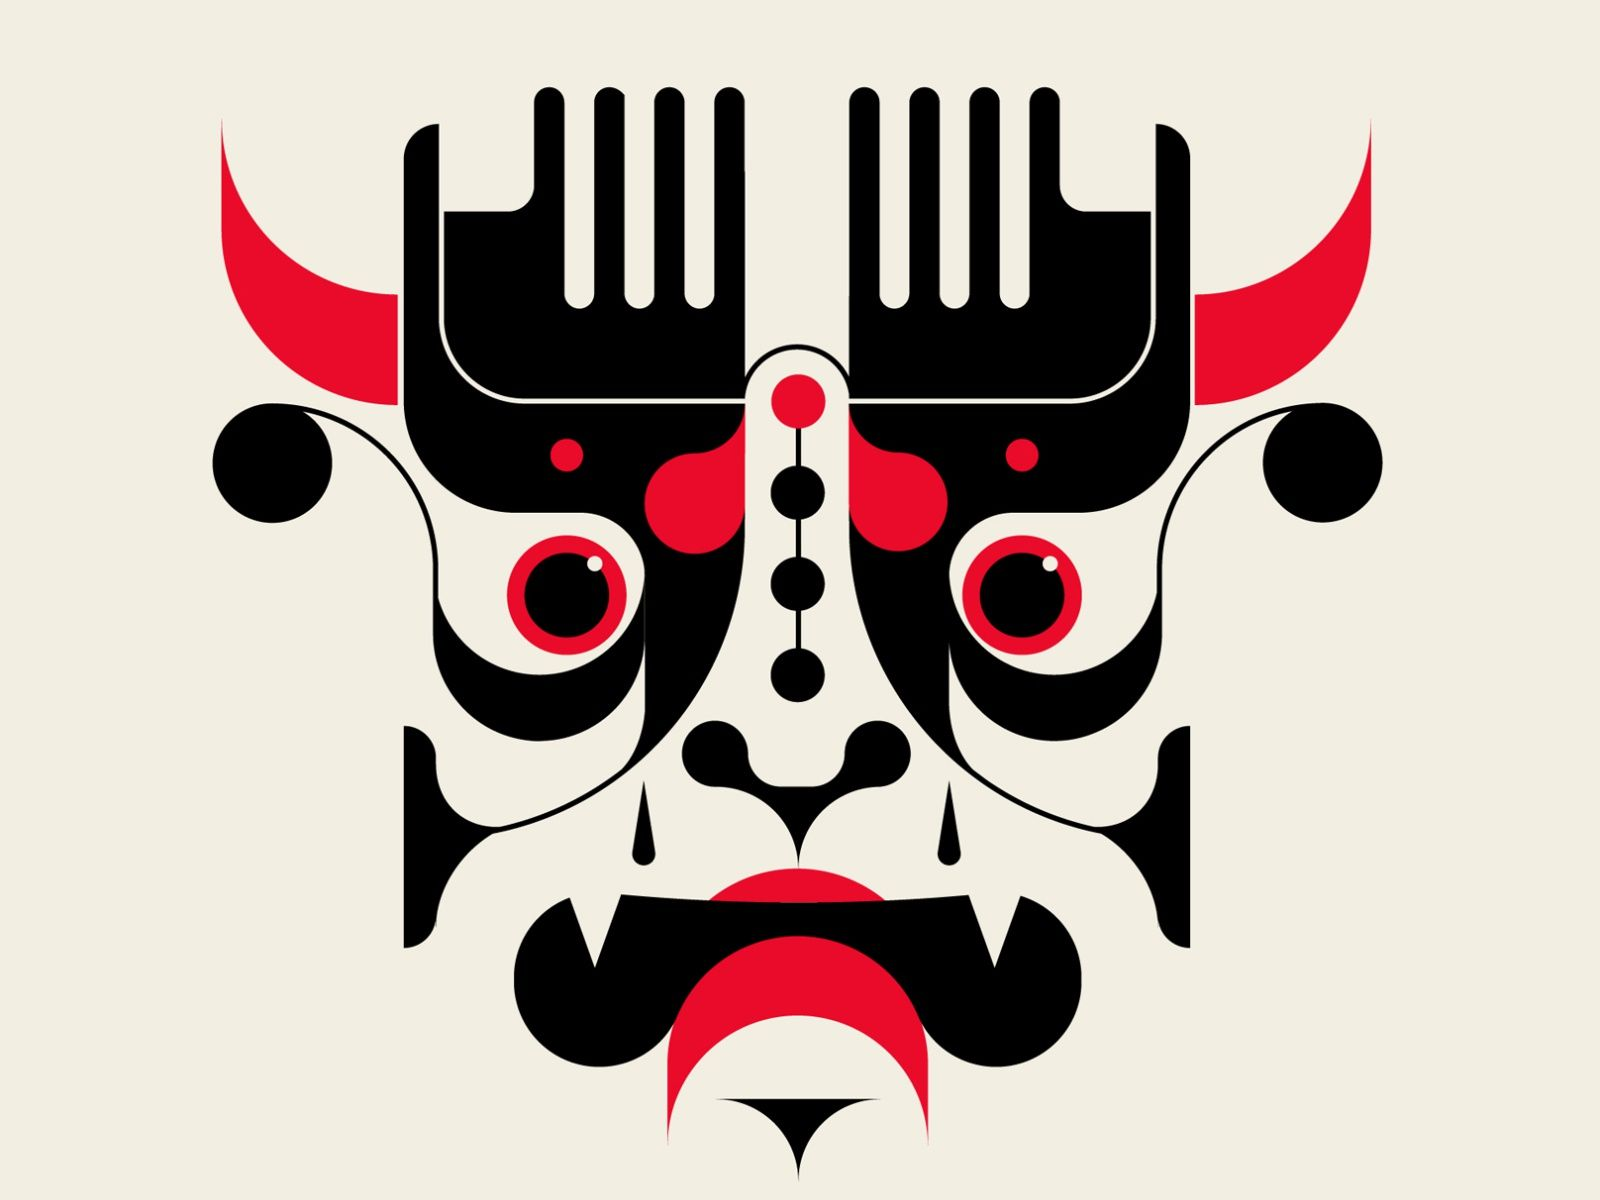 Kabuki Style Design Of Man Poster Image by Shutterstock